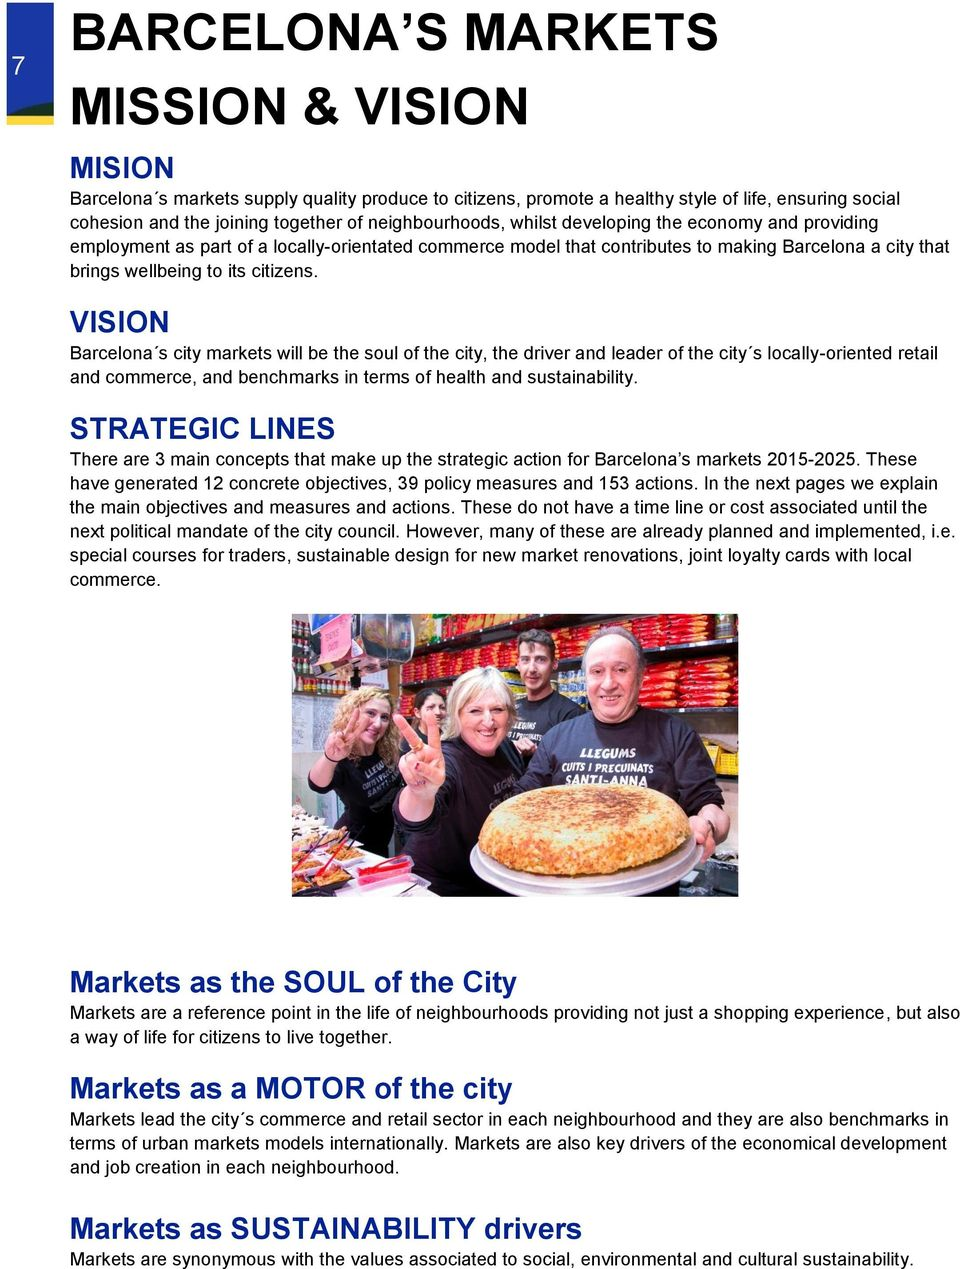 VISION Barcelona s city markets will be the soul of the city, the driver and leader of the city s locally-oriented retail and commerce, and benchmarks in terms of health and sustainability.